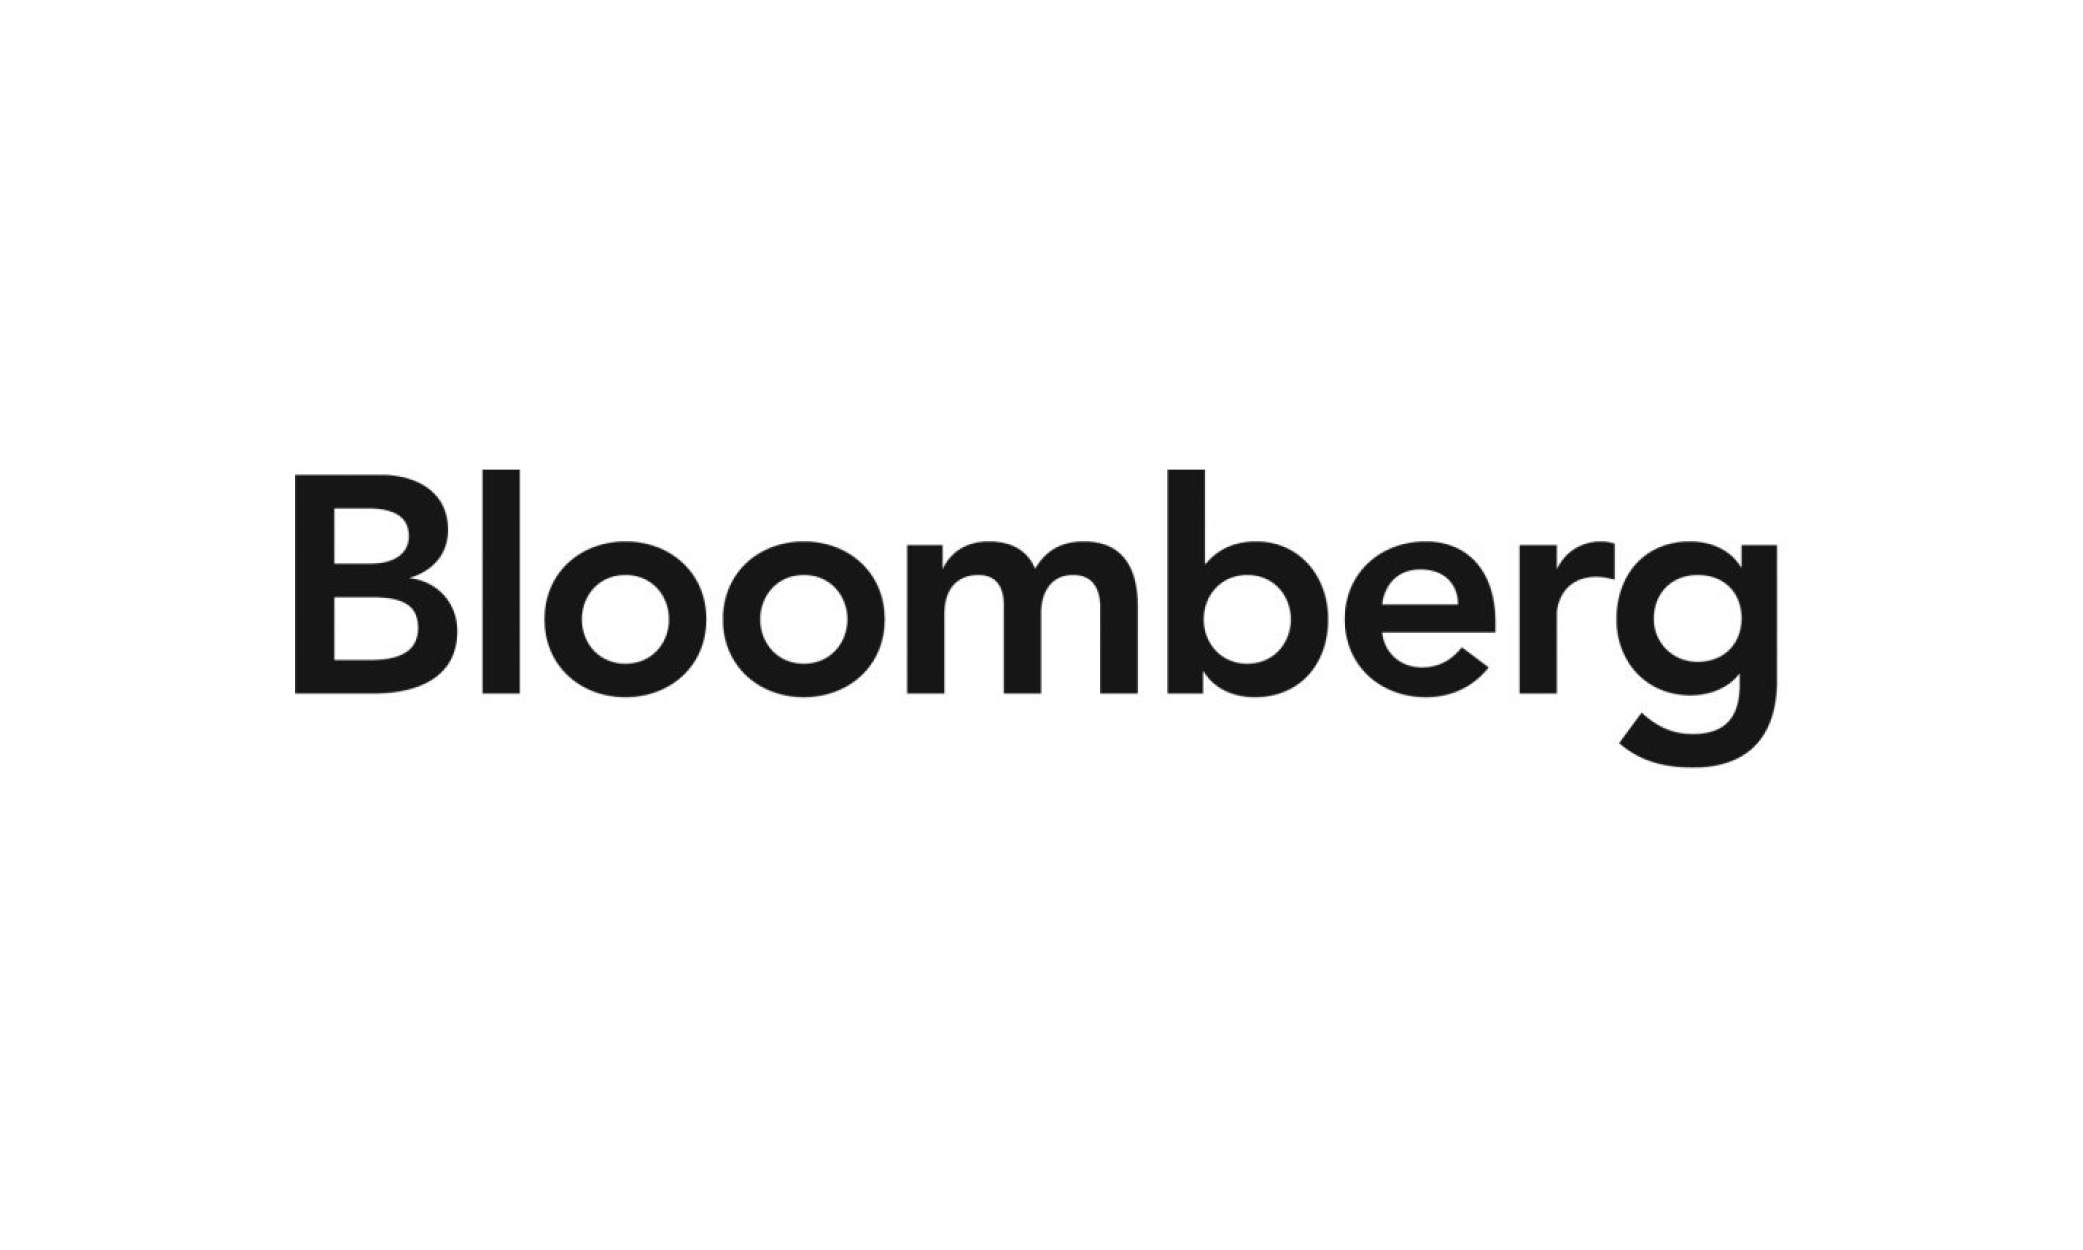 Bloomberg White bkgd.png